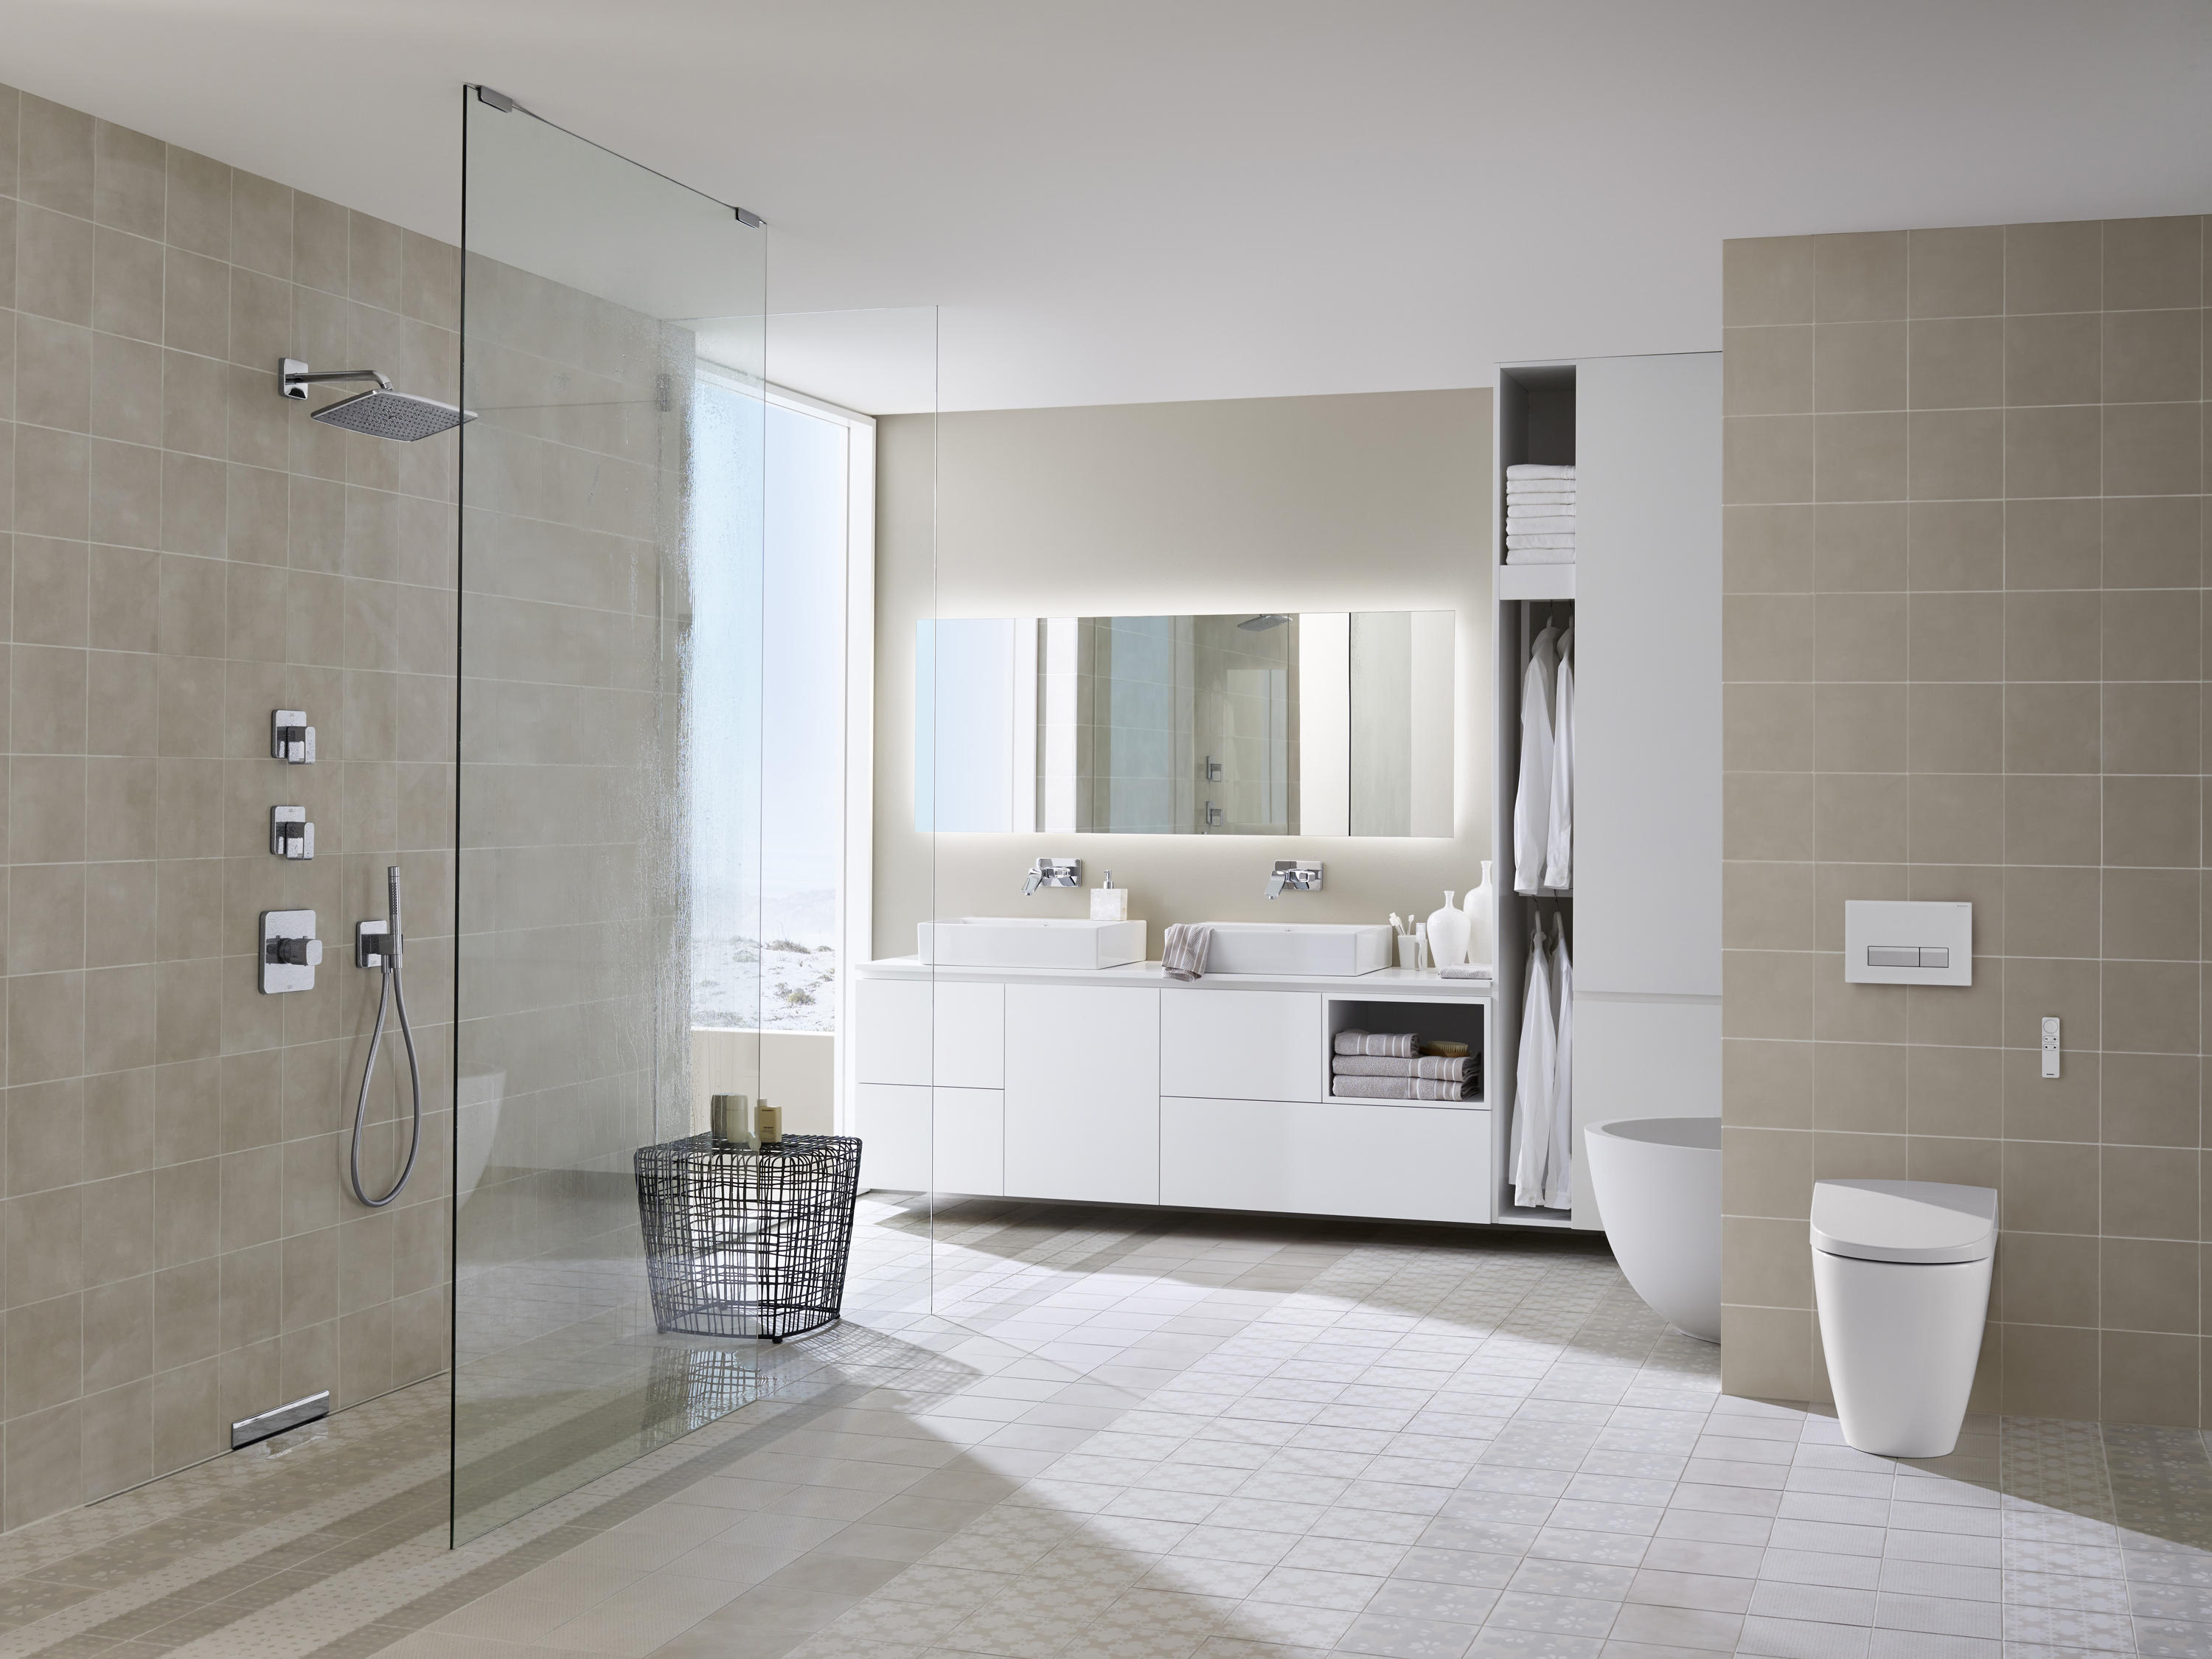 Geberit aquaclean 5000plus dusch klosetts von geberit for Inspiration badezimmer